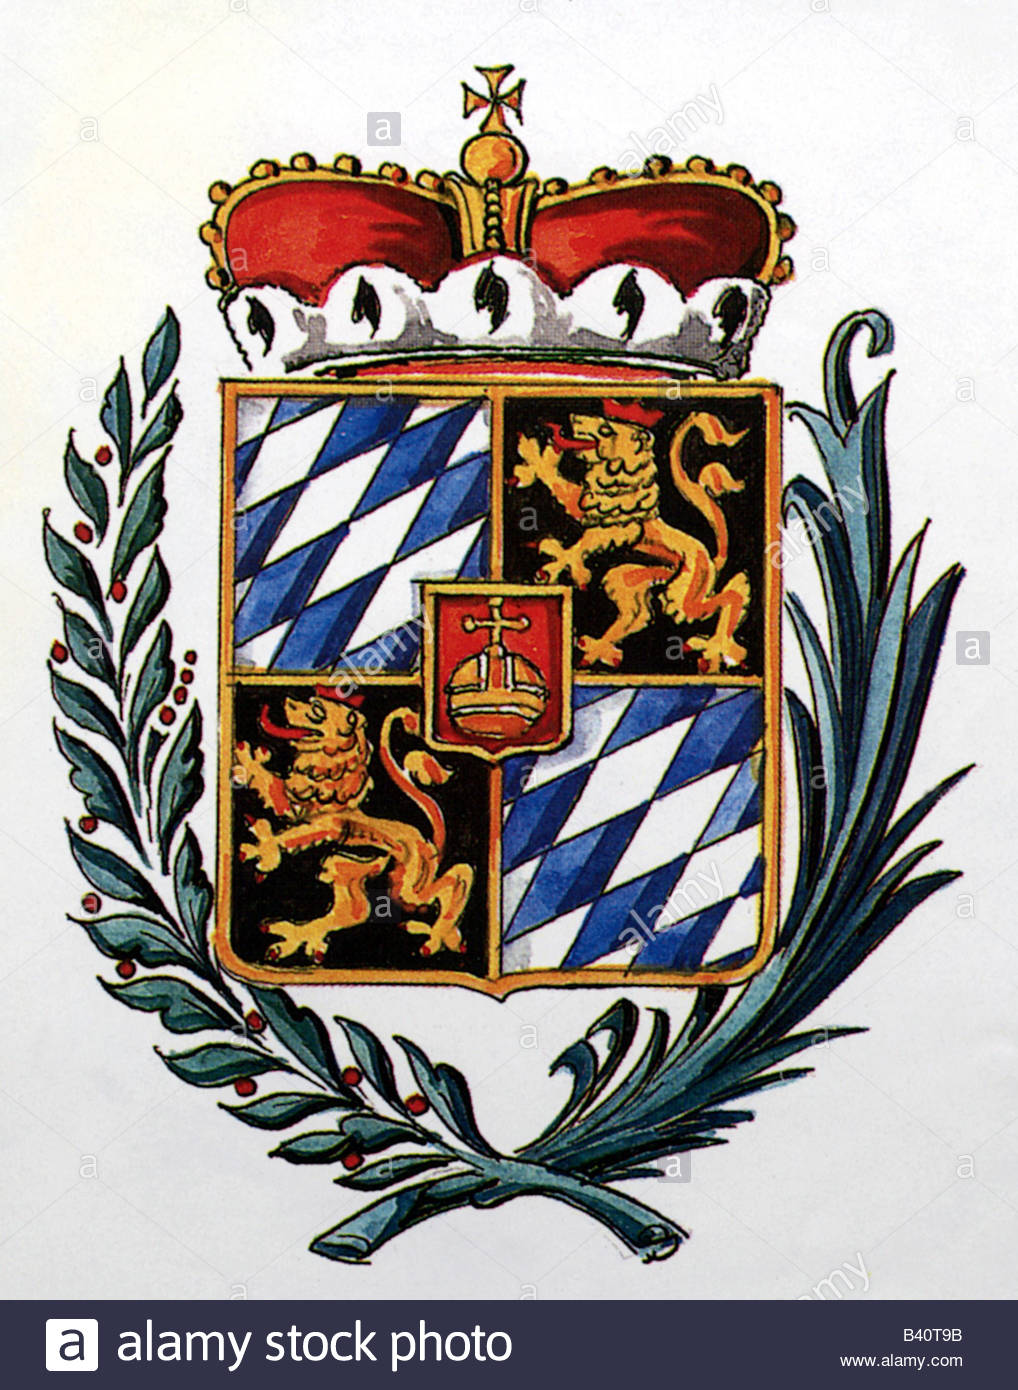 heraldry, coat of arms, Germany, electorate Bavaria-Palatinate, 1777 - 1805, Additional-Rights-Clearances-NA - Stock Image